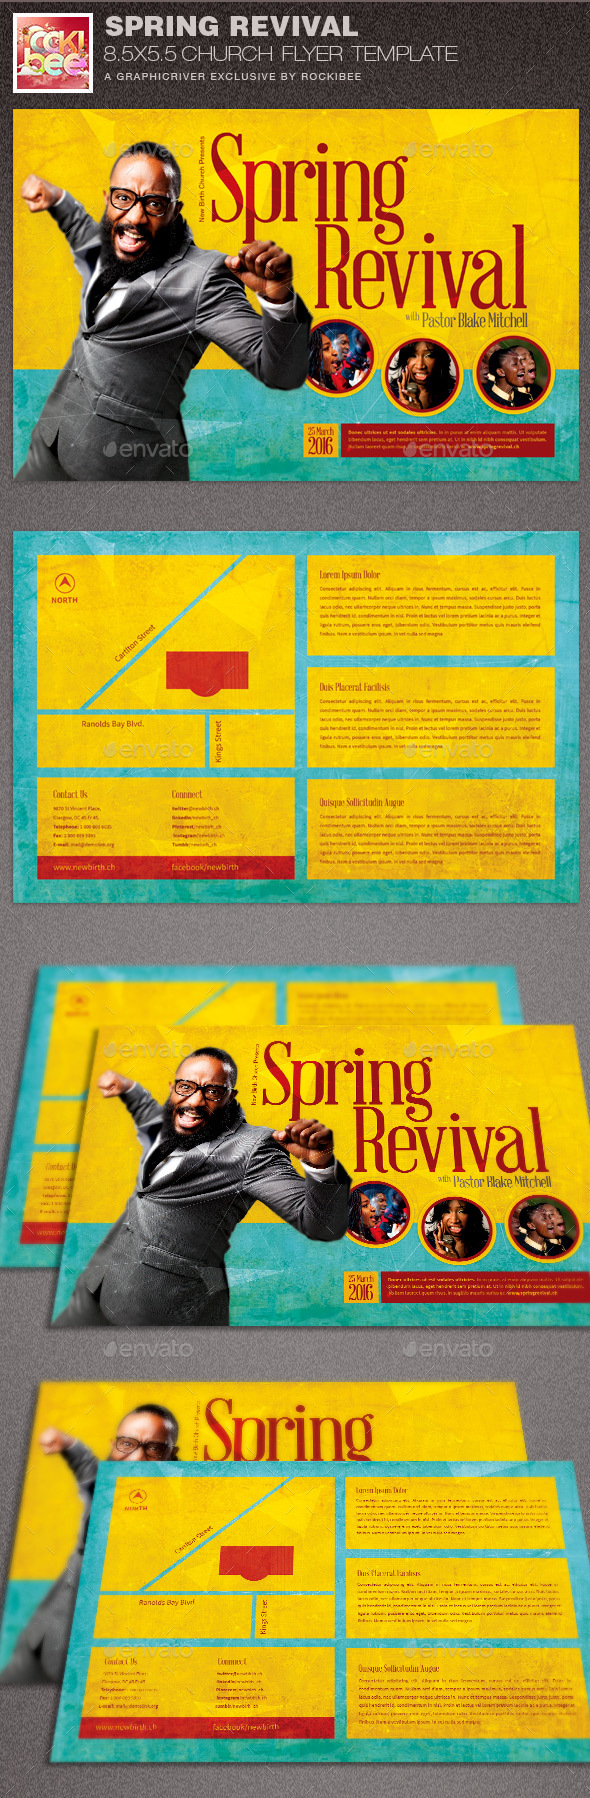 Spring revival church flyer template by rockibee for Free church revival flyer template